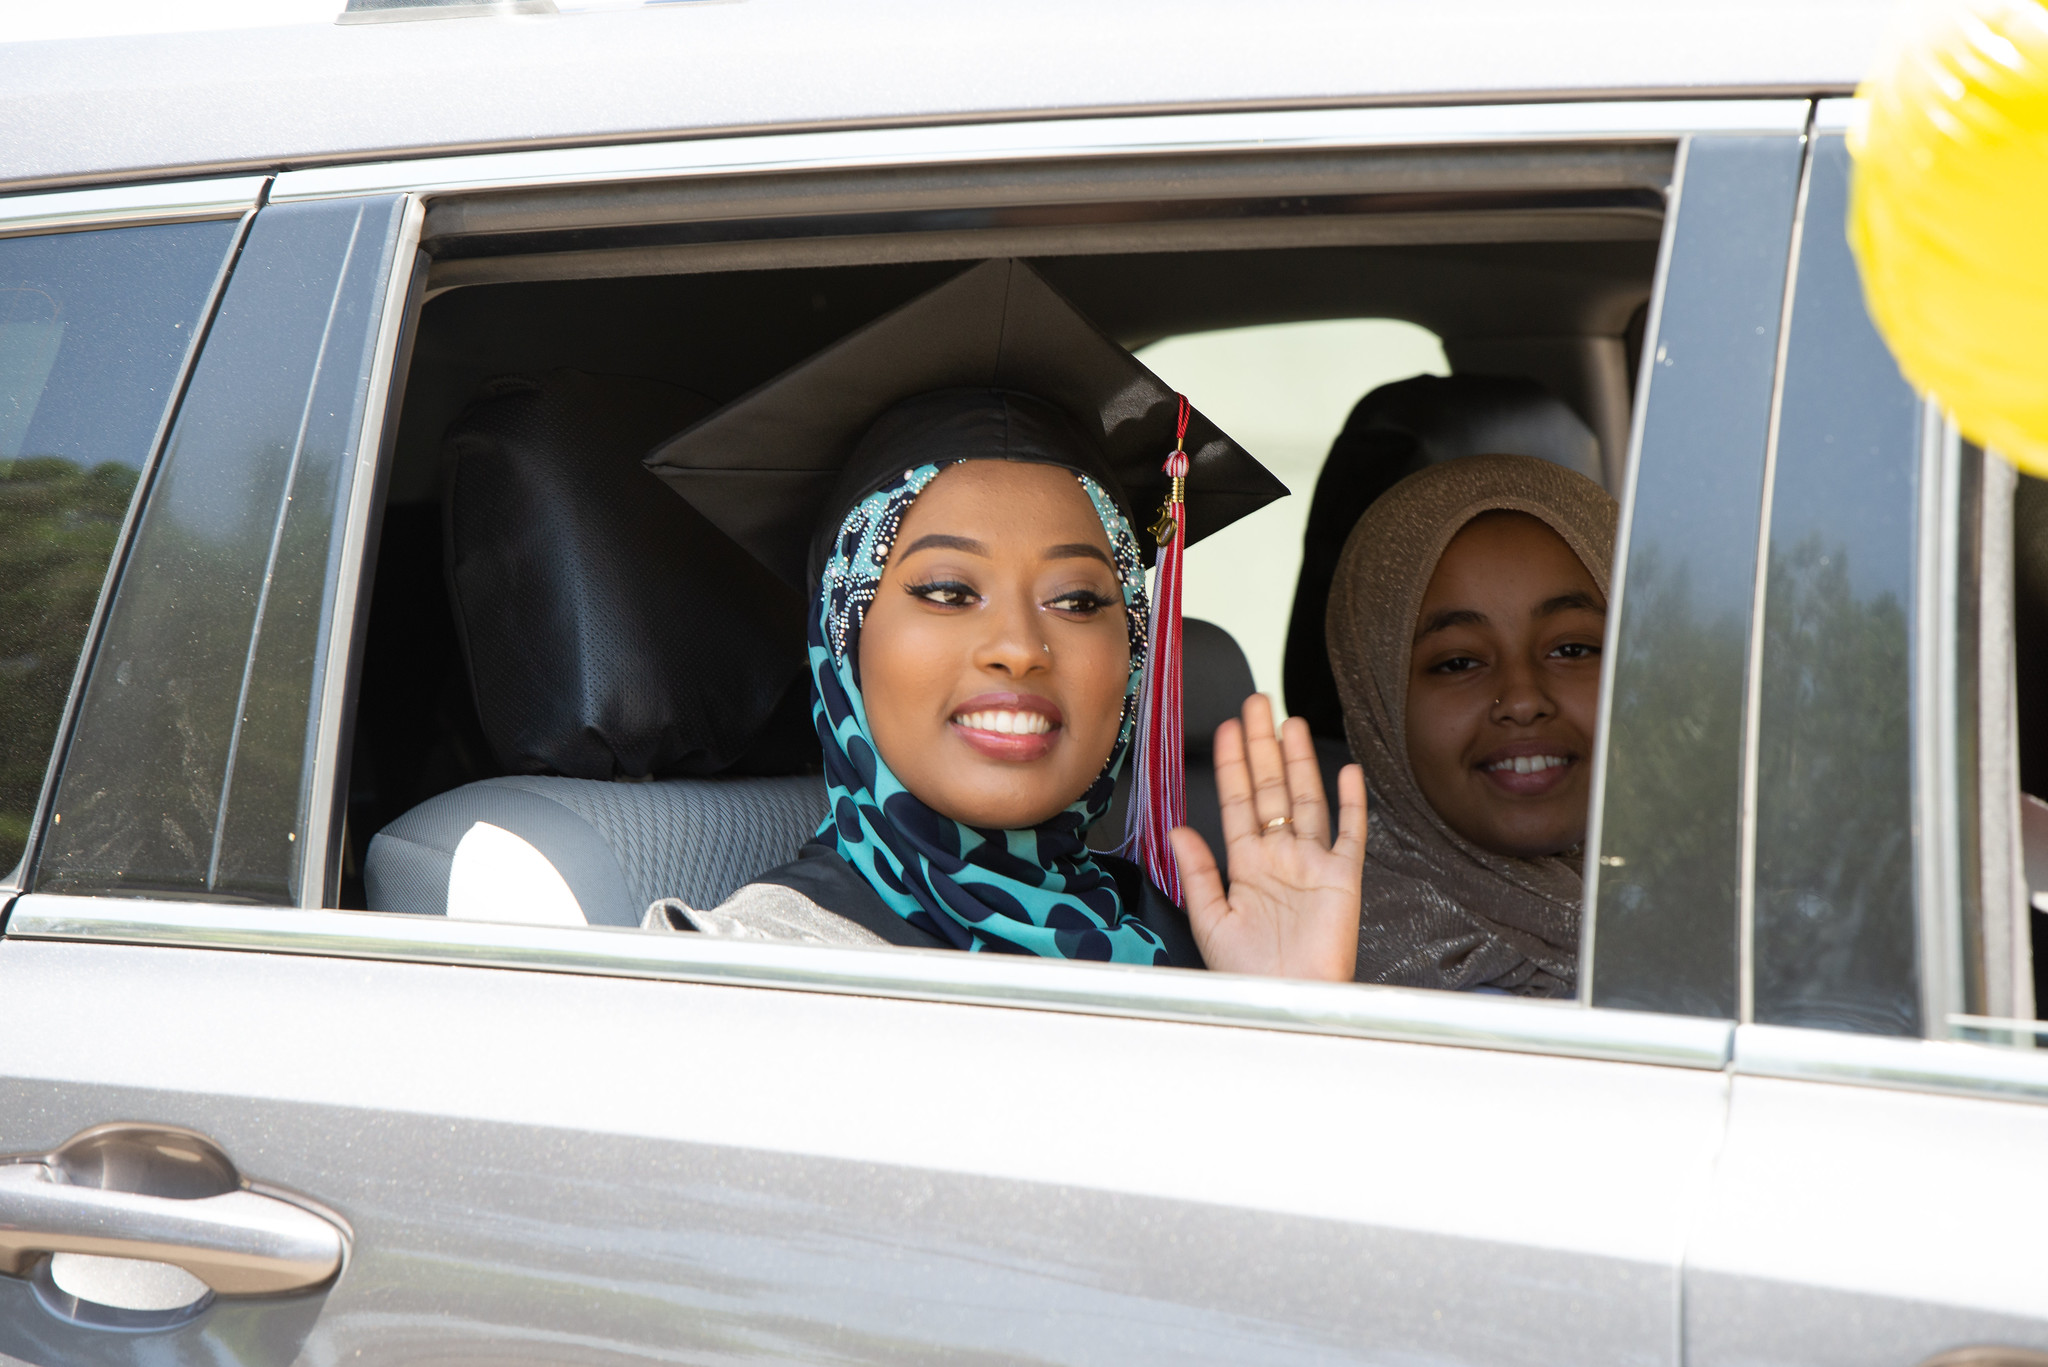 Students celebrated at City College's drive-thru graduation